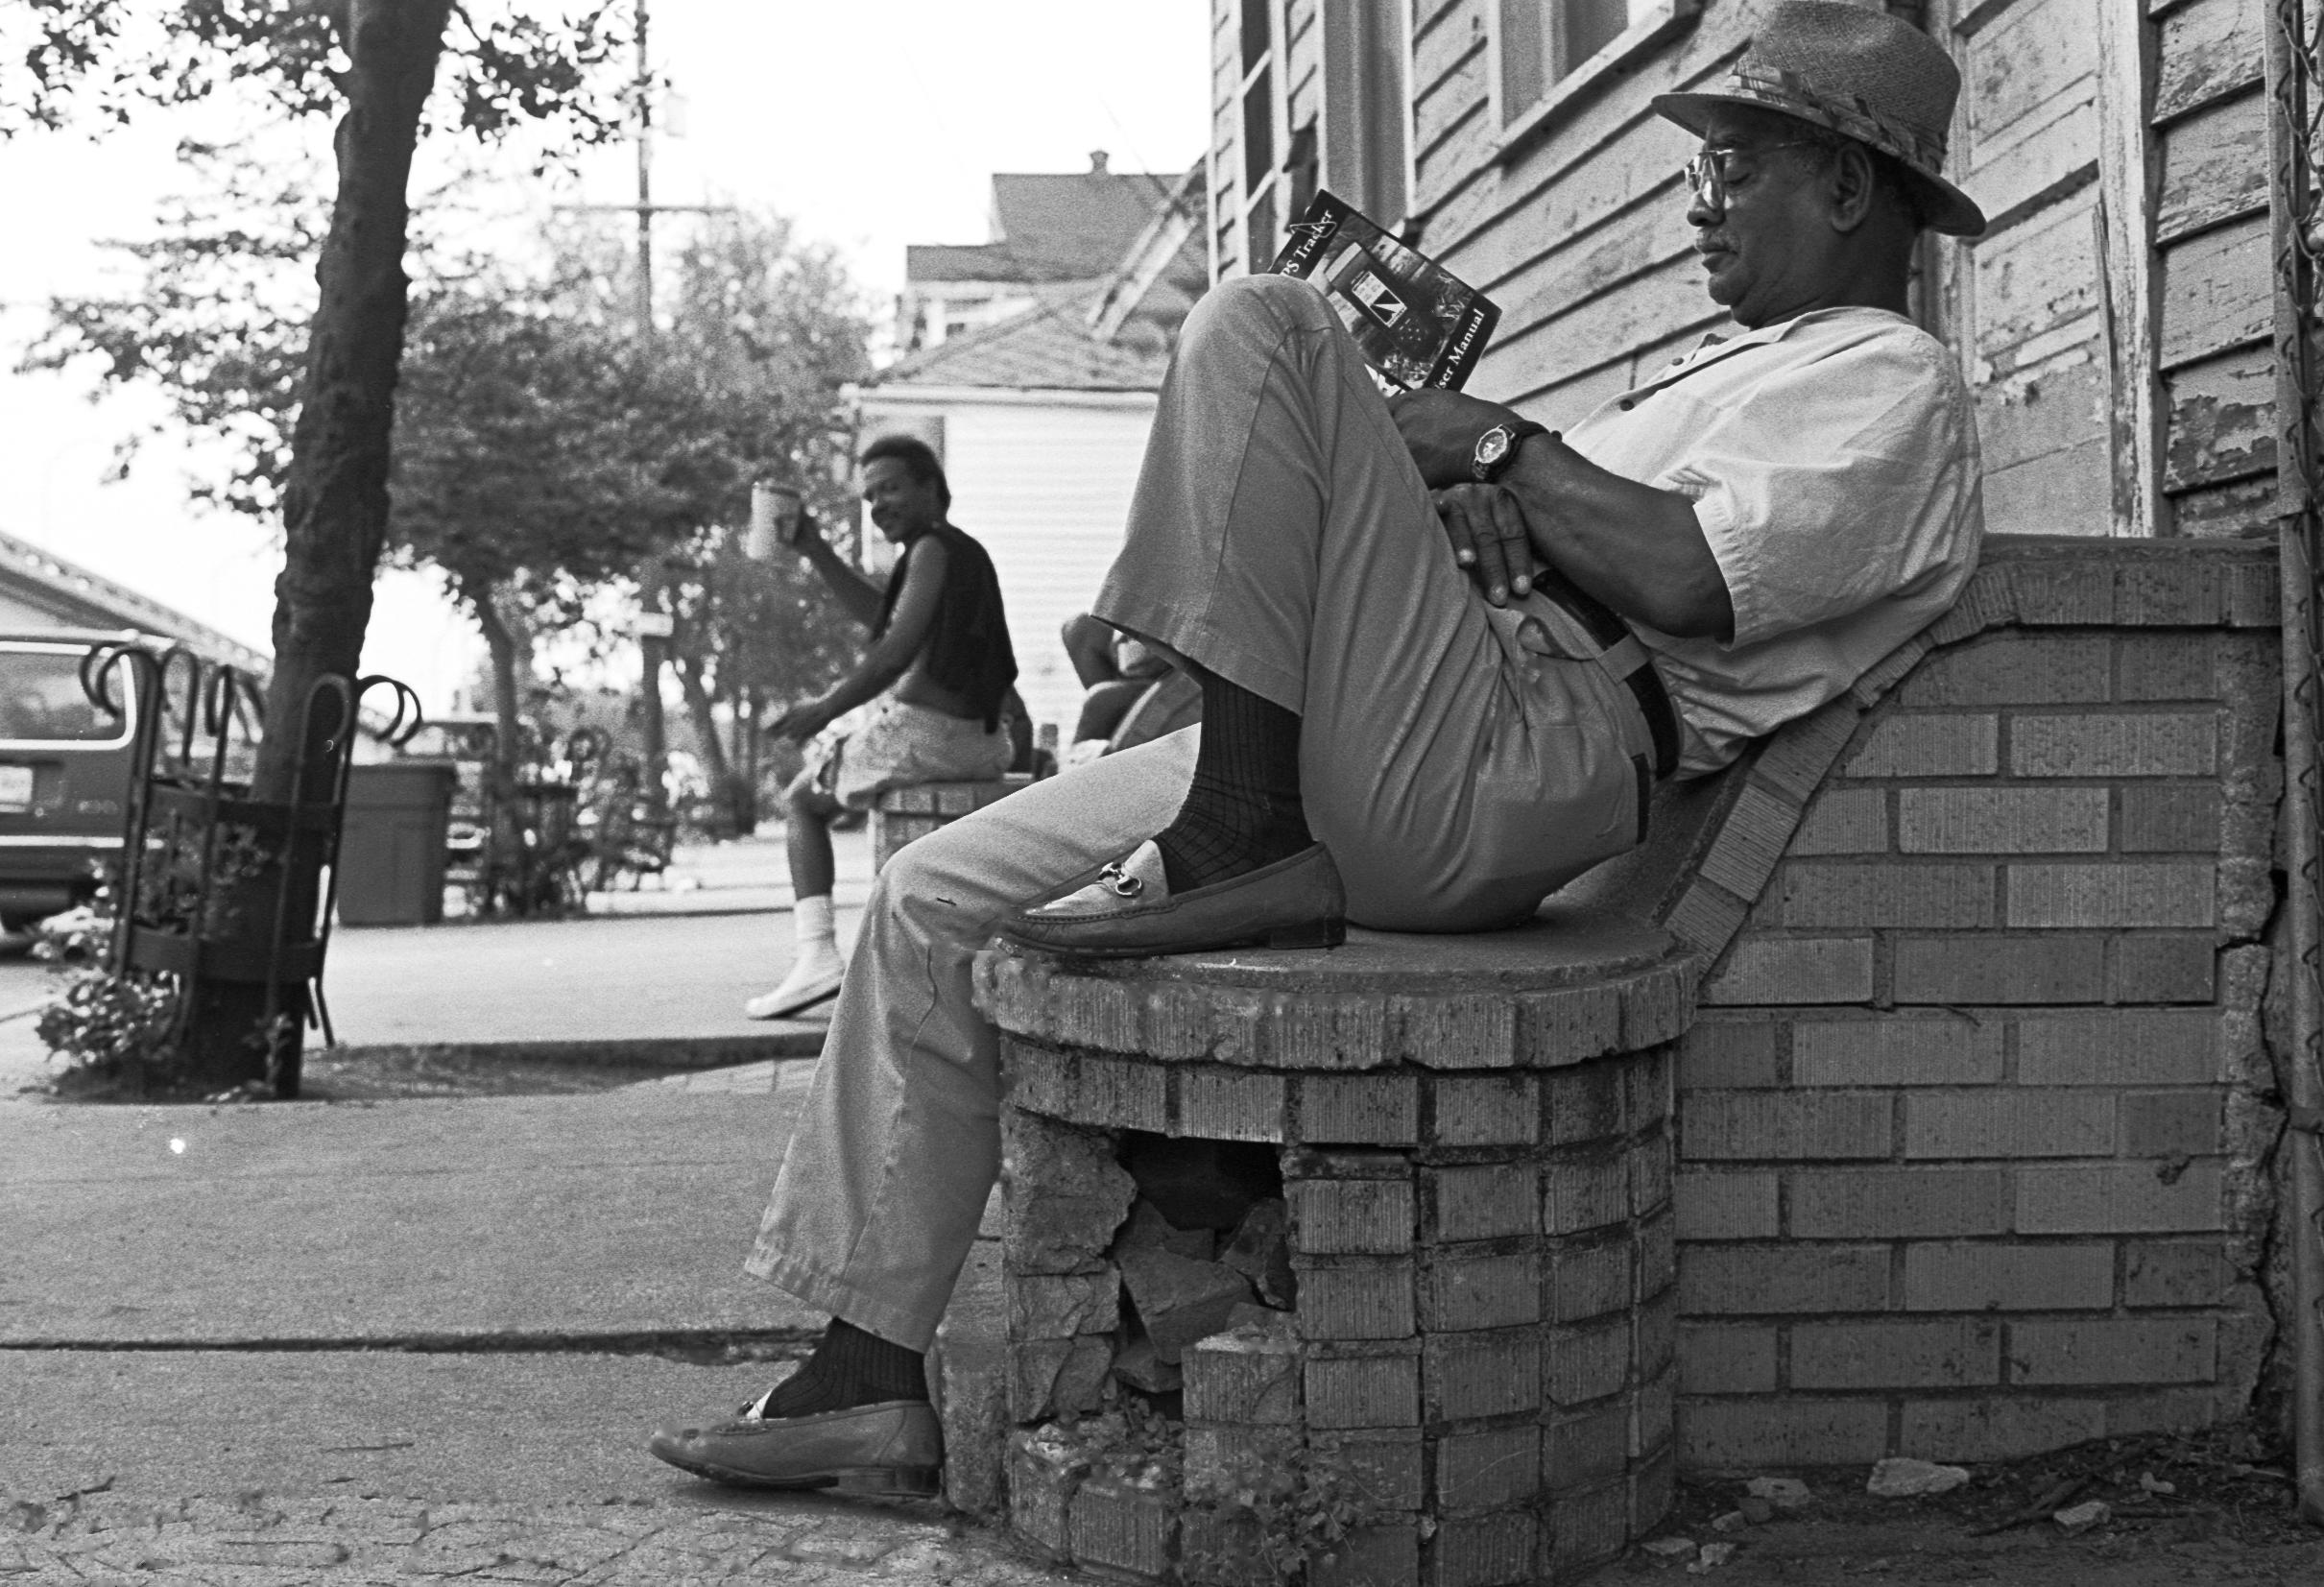 Claiborne_Avenue_Relaxing.jpg